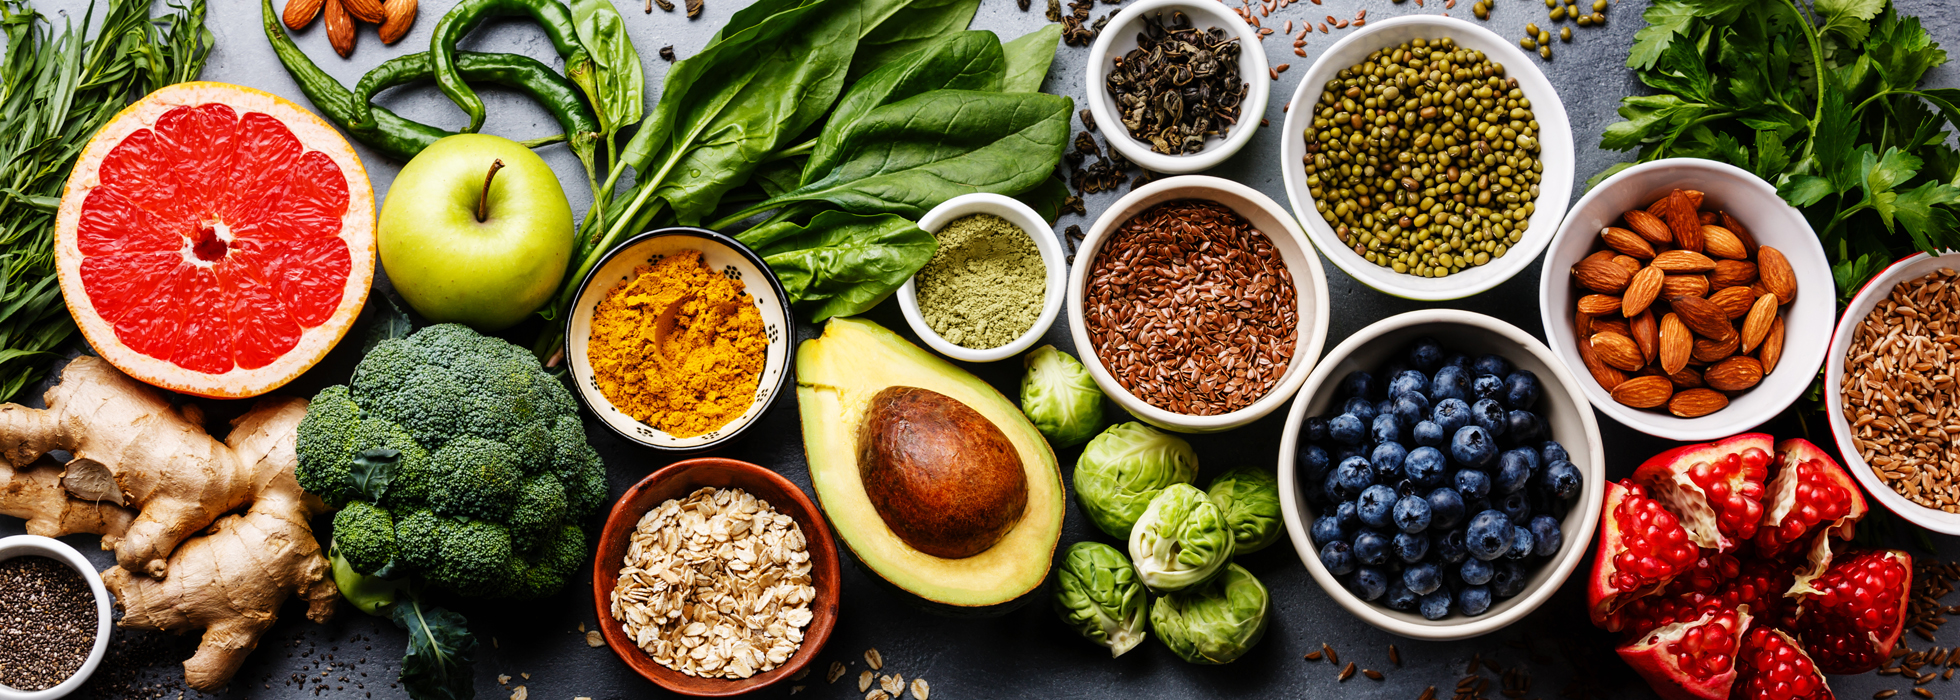 Nutritional Coaching near Indianapolis IN, Nutritional Coaching near Northwest Indianapolis IN, Nutritional Coaching near Zionsville IN, Nutritional Coaching near Carmel IN, Nutritional Coaching near Whitestown IN